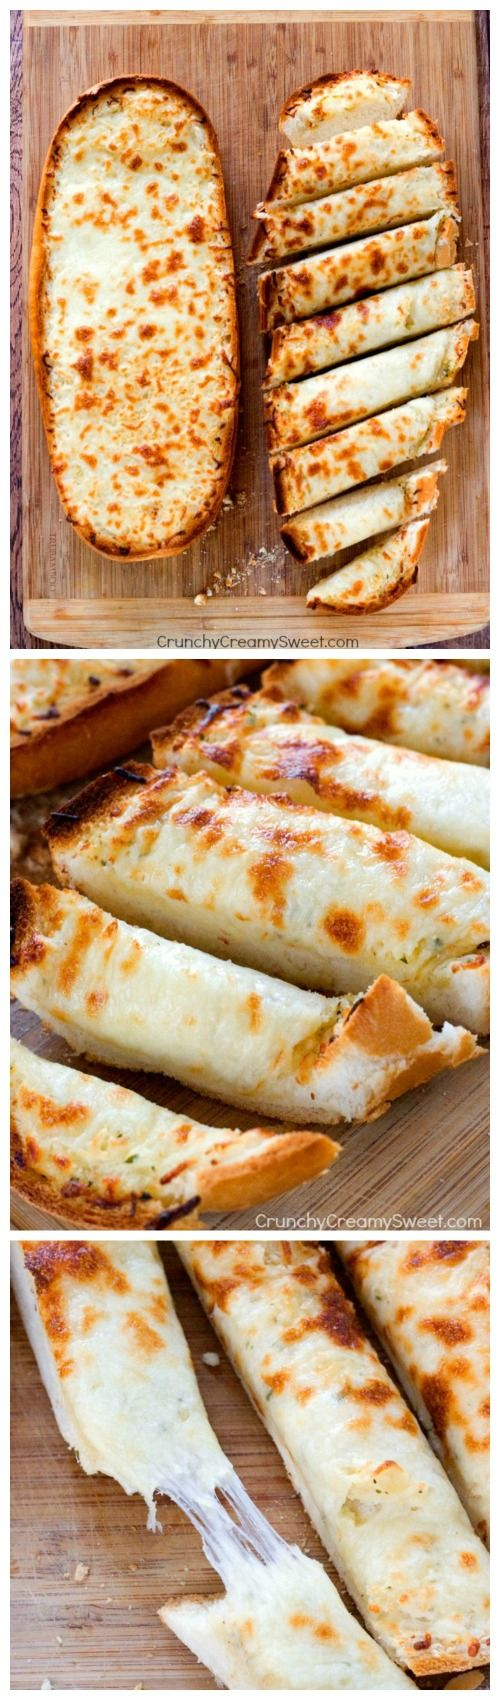 Easy Cheesy Garlic Bread made in just 20 minutes #recipe #bread #pasta #noodles #recipe #easy #recipes